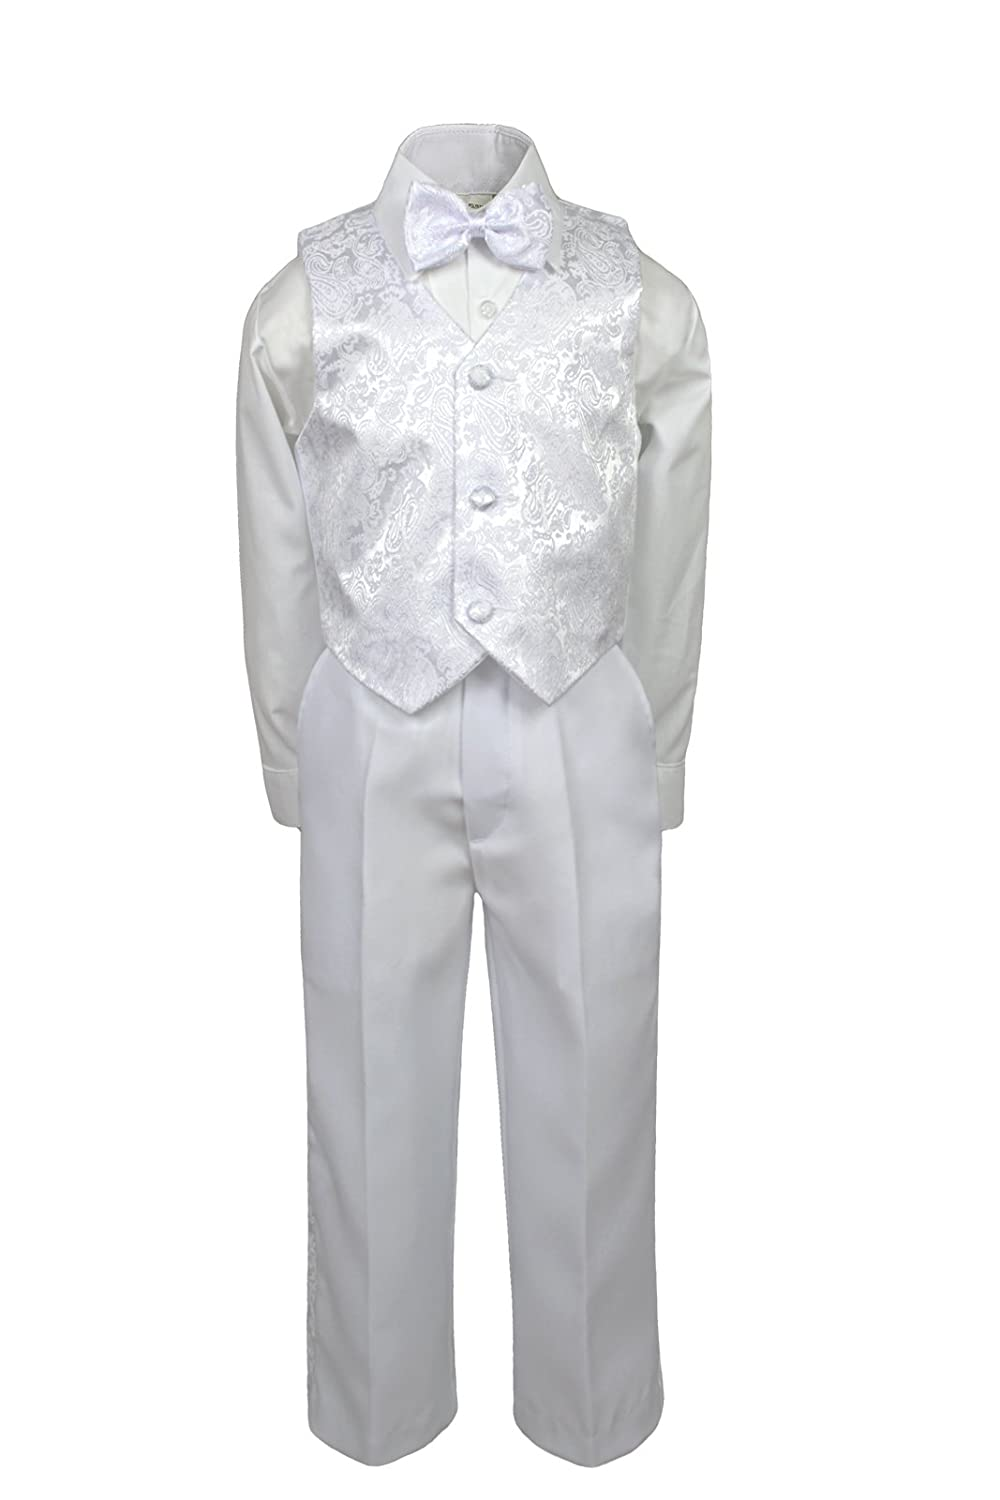 Leadertux Baby Toddler Teen Boy Formal Wedding Paisley Suit White Jacket sz S-20 7